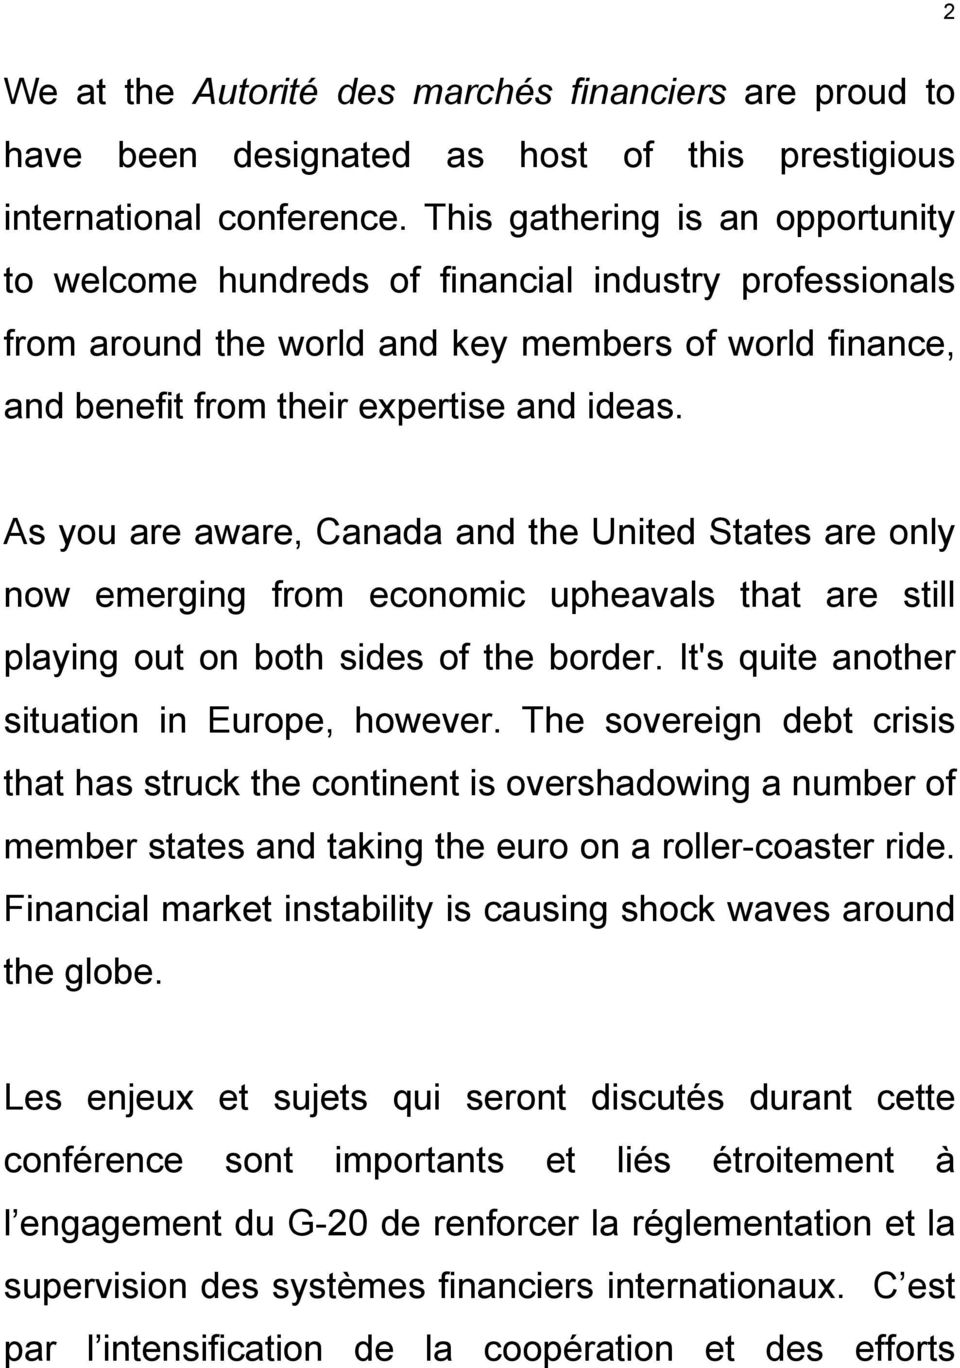 As you are aware, Canada and the United States are only now emerging from economic upheavals that are still playing out on both sides of the border. It's quite another situation in Europe, however.